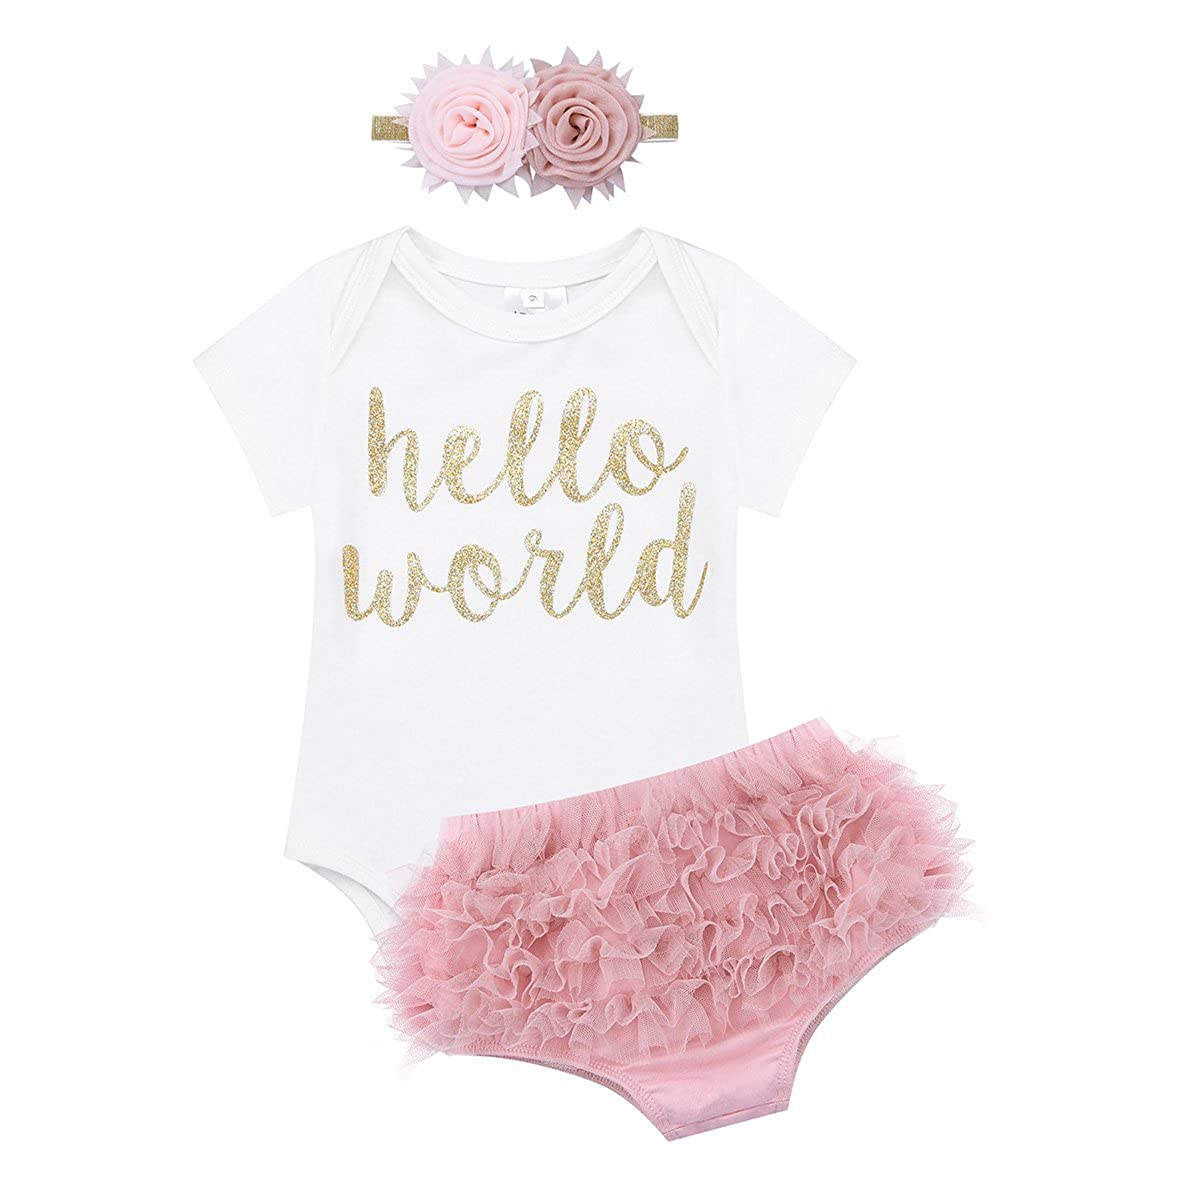 iEFiEL Newborn Baby Girls Hello World Outfit Short Sleeves Romper Bodysuit with Ruffle Tutu Shorts Bloomers Headband Set